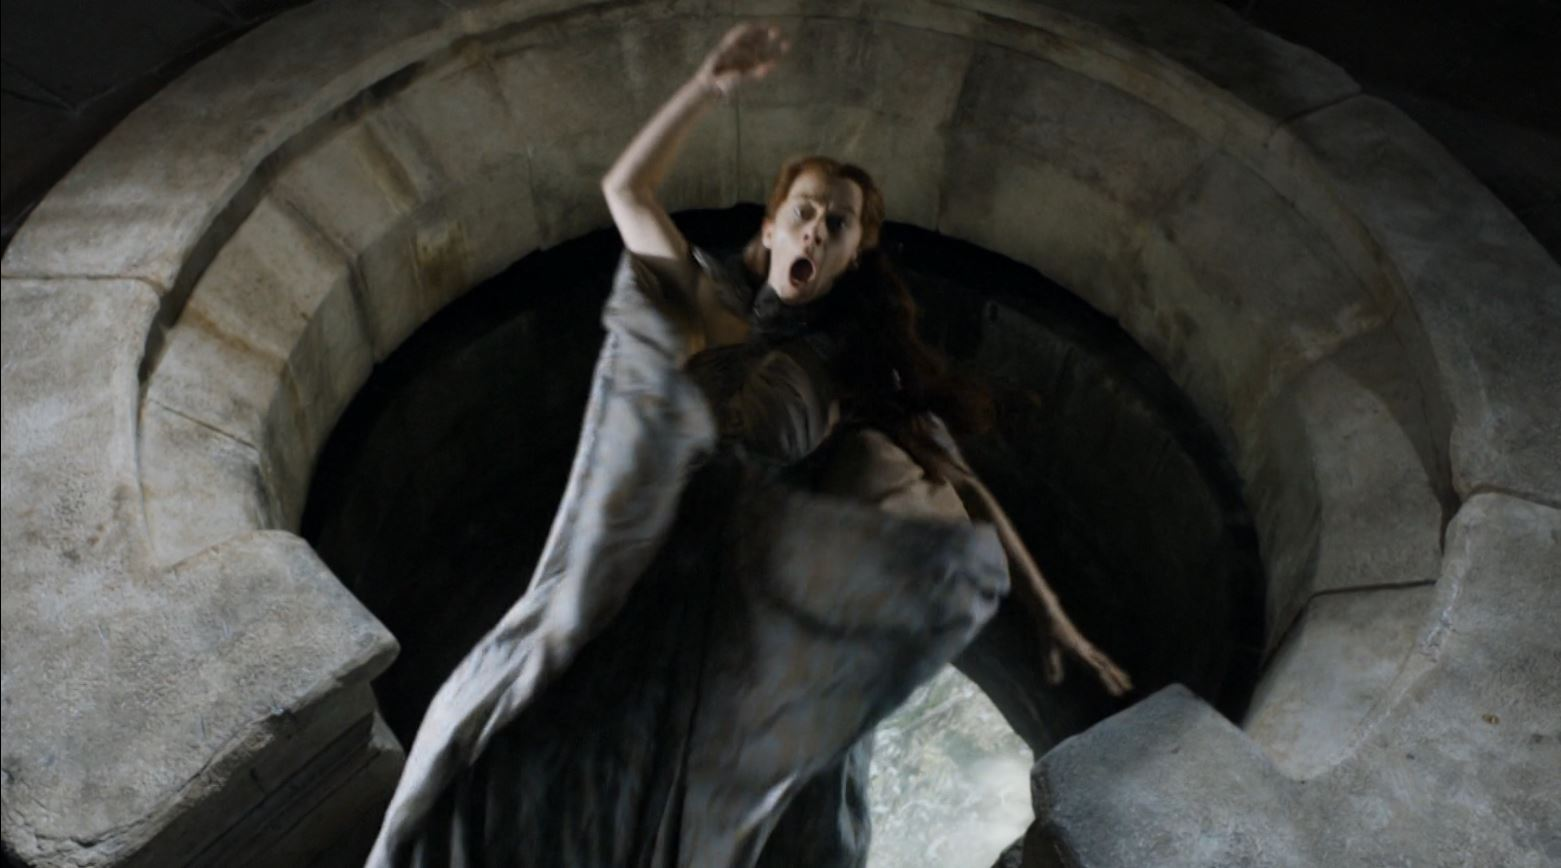 Game Of Thrones S4Ep7 Mockingbird Review - Kate Dickie as Lysa Arryn thrown out of the moon door